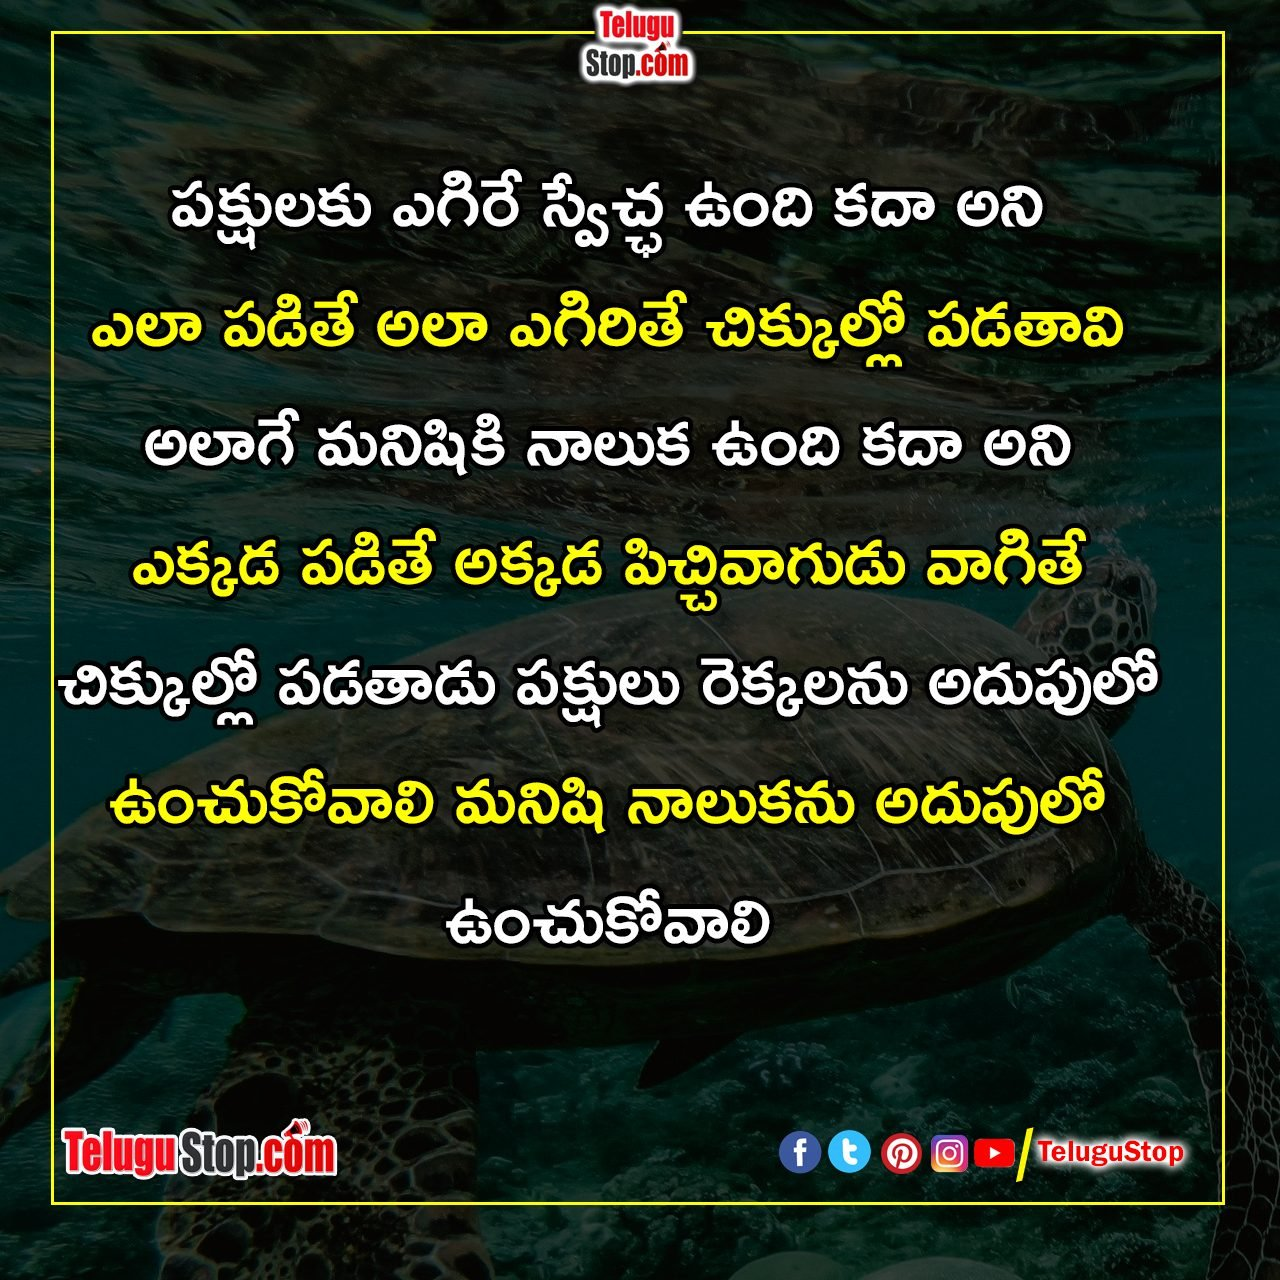 Telugu Love Is More Than Enough Inspiriational Quotes, Ramana Maharshi Inspiriational Quotes, The Man Must Keep His Tongue Under Control Inspitriational Quotes, Use The Available Time Gesture Inspiriational Quotes-Telugu Daily Quotes - Inspirational/Motivational/Love/Friendship/Good Morning Quote